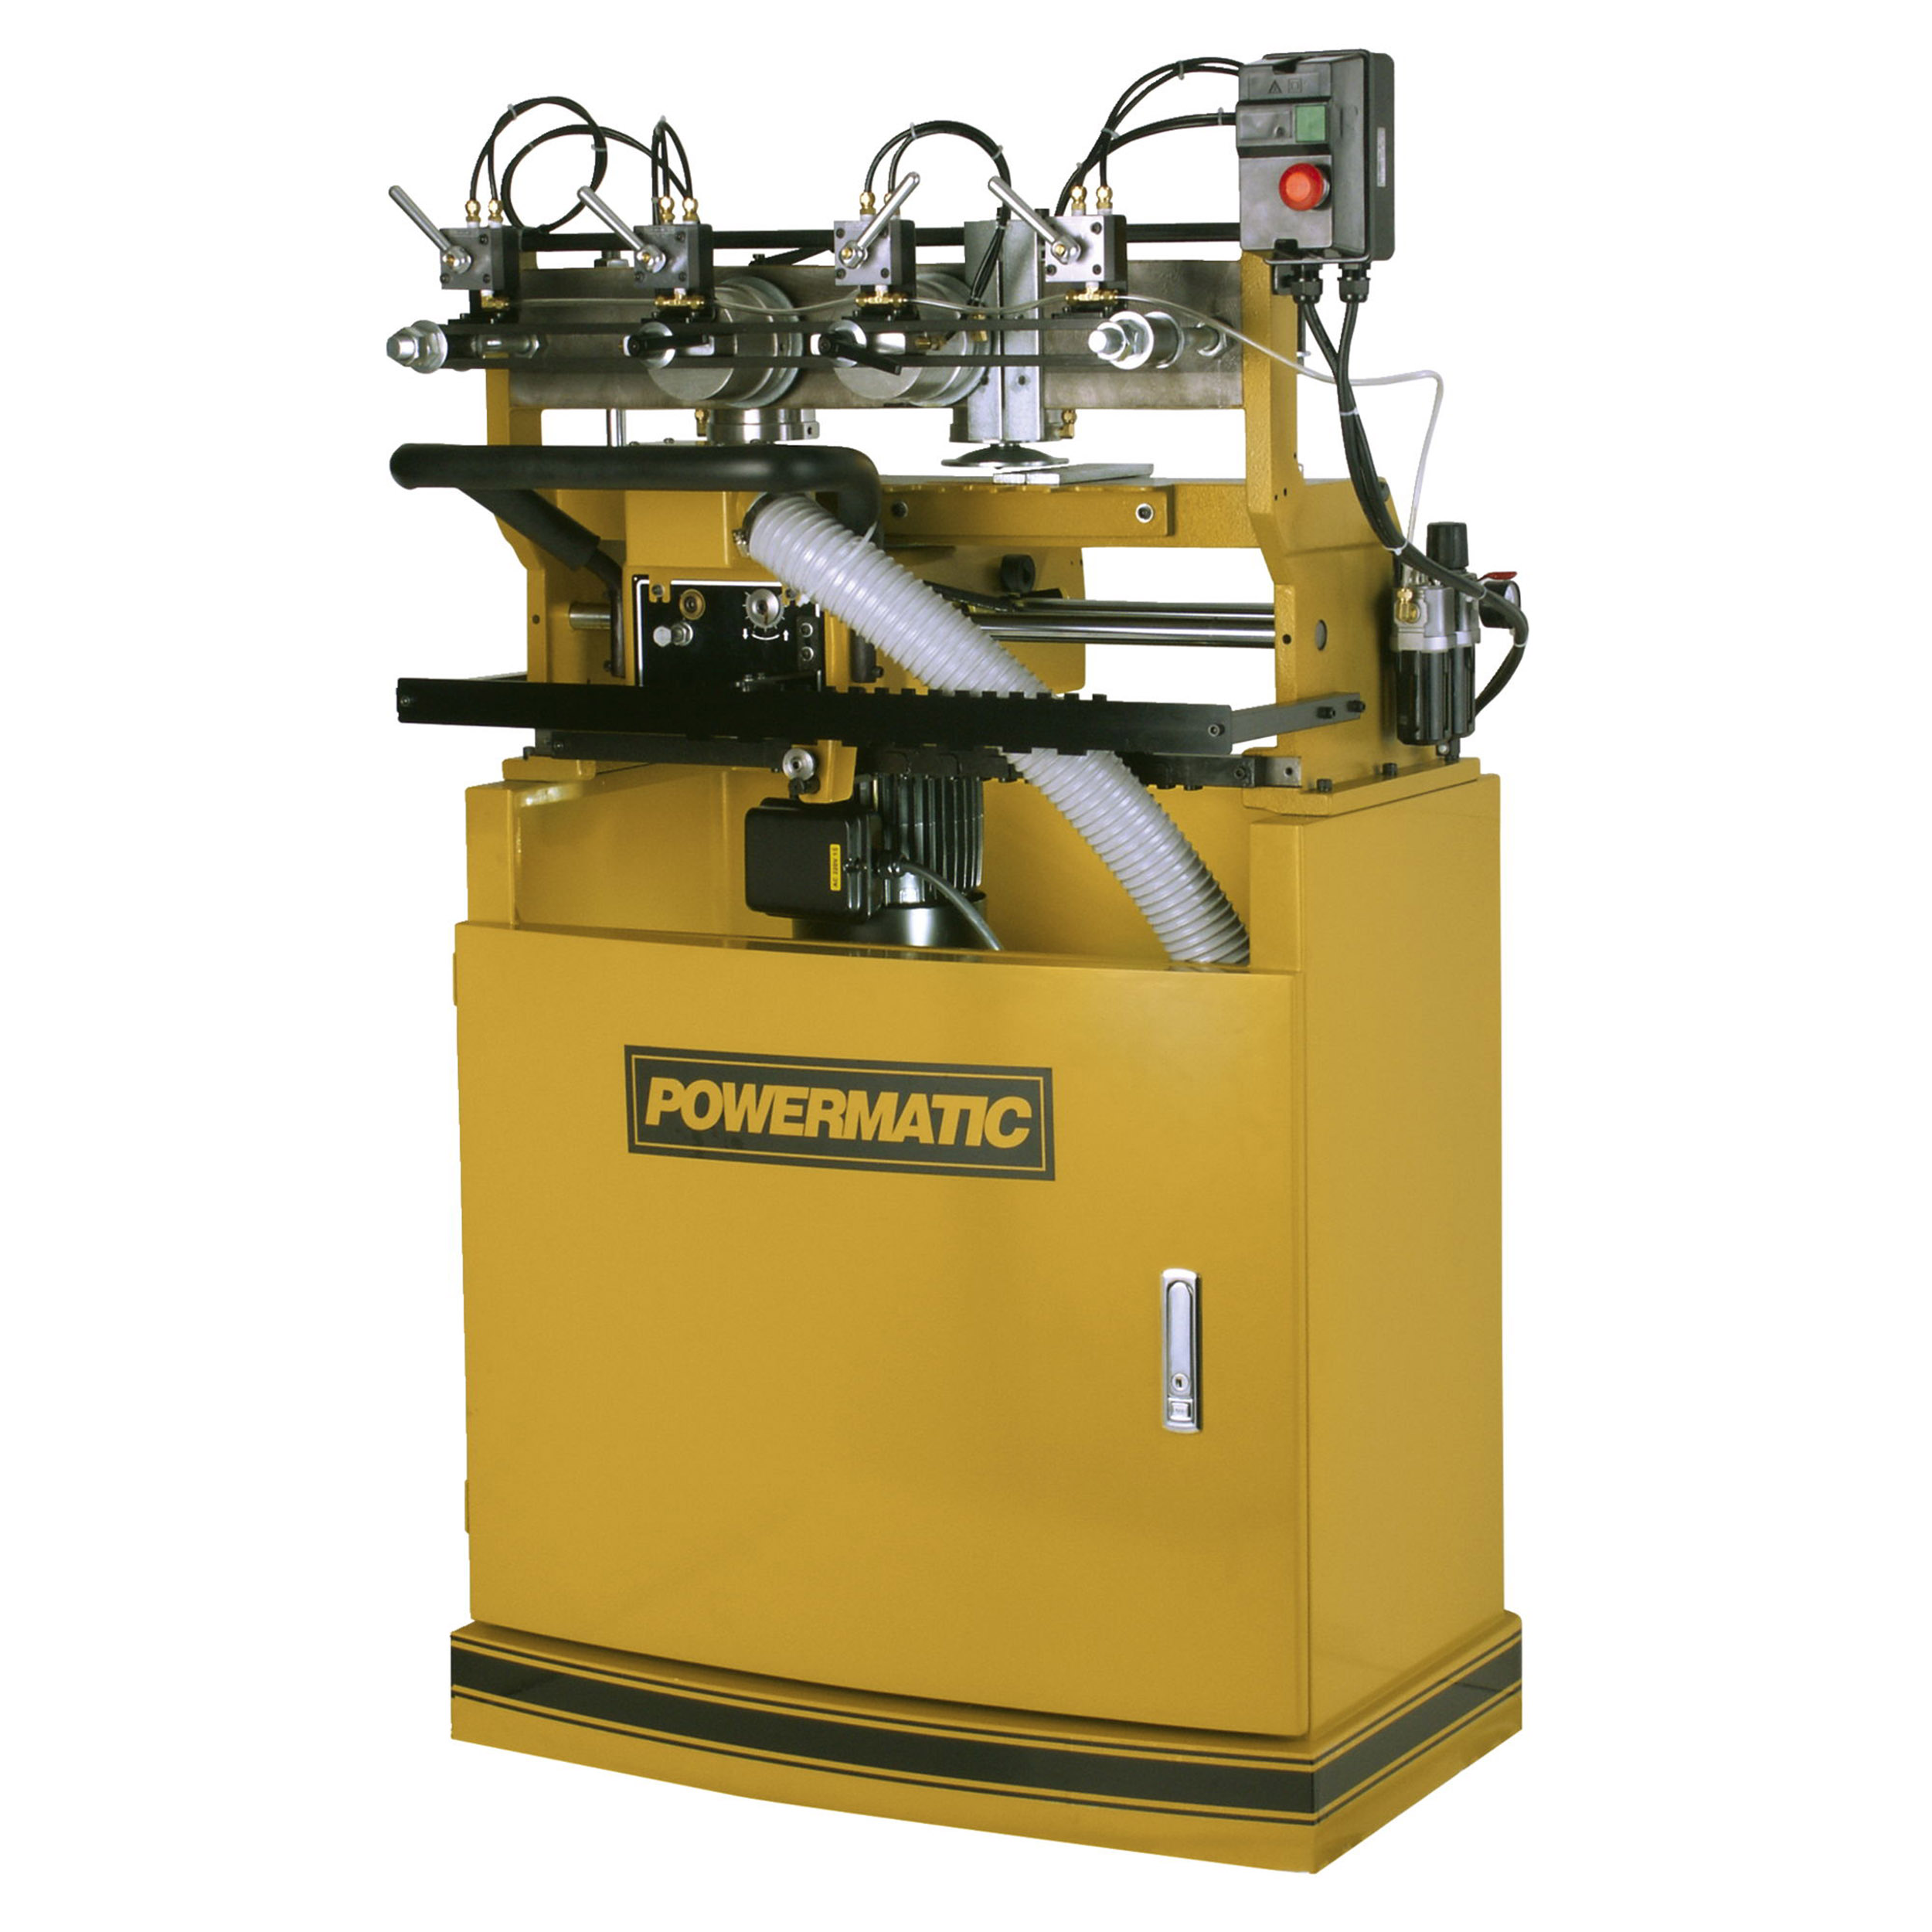 Dovetailer with Pneumatic Clamping, 1HP, 1PH, 230V, Model DT65